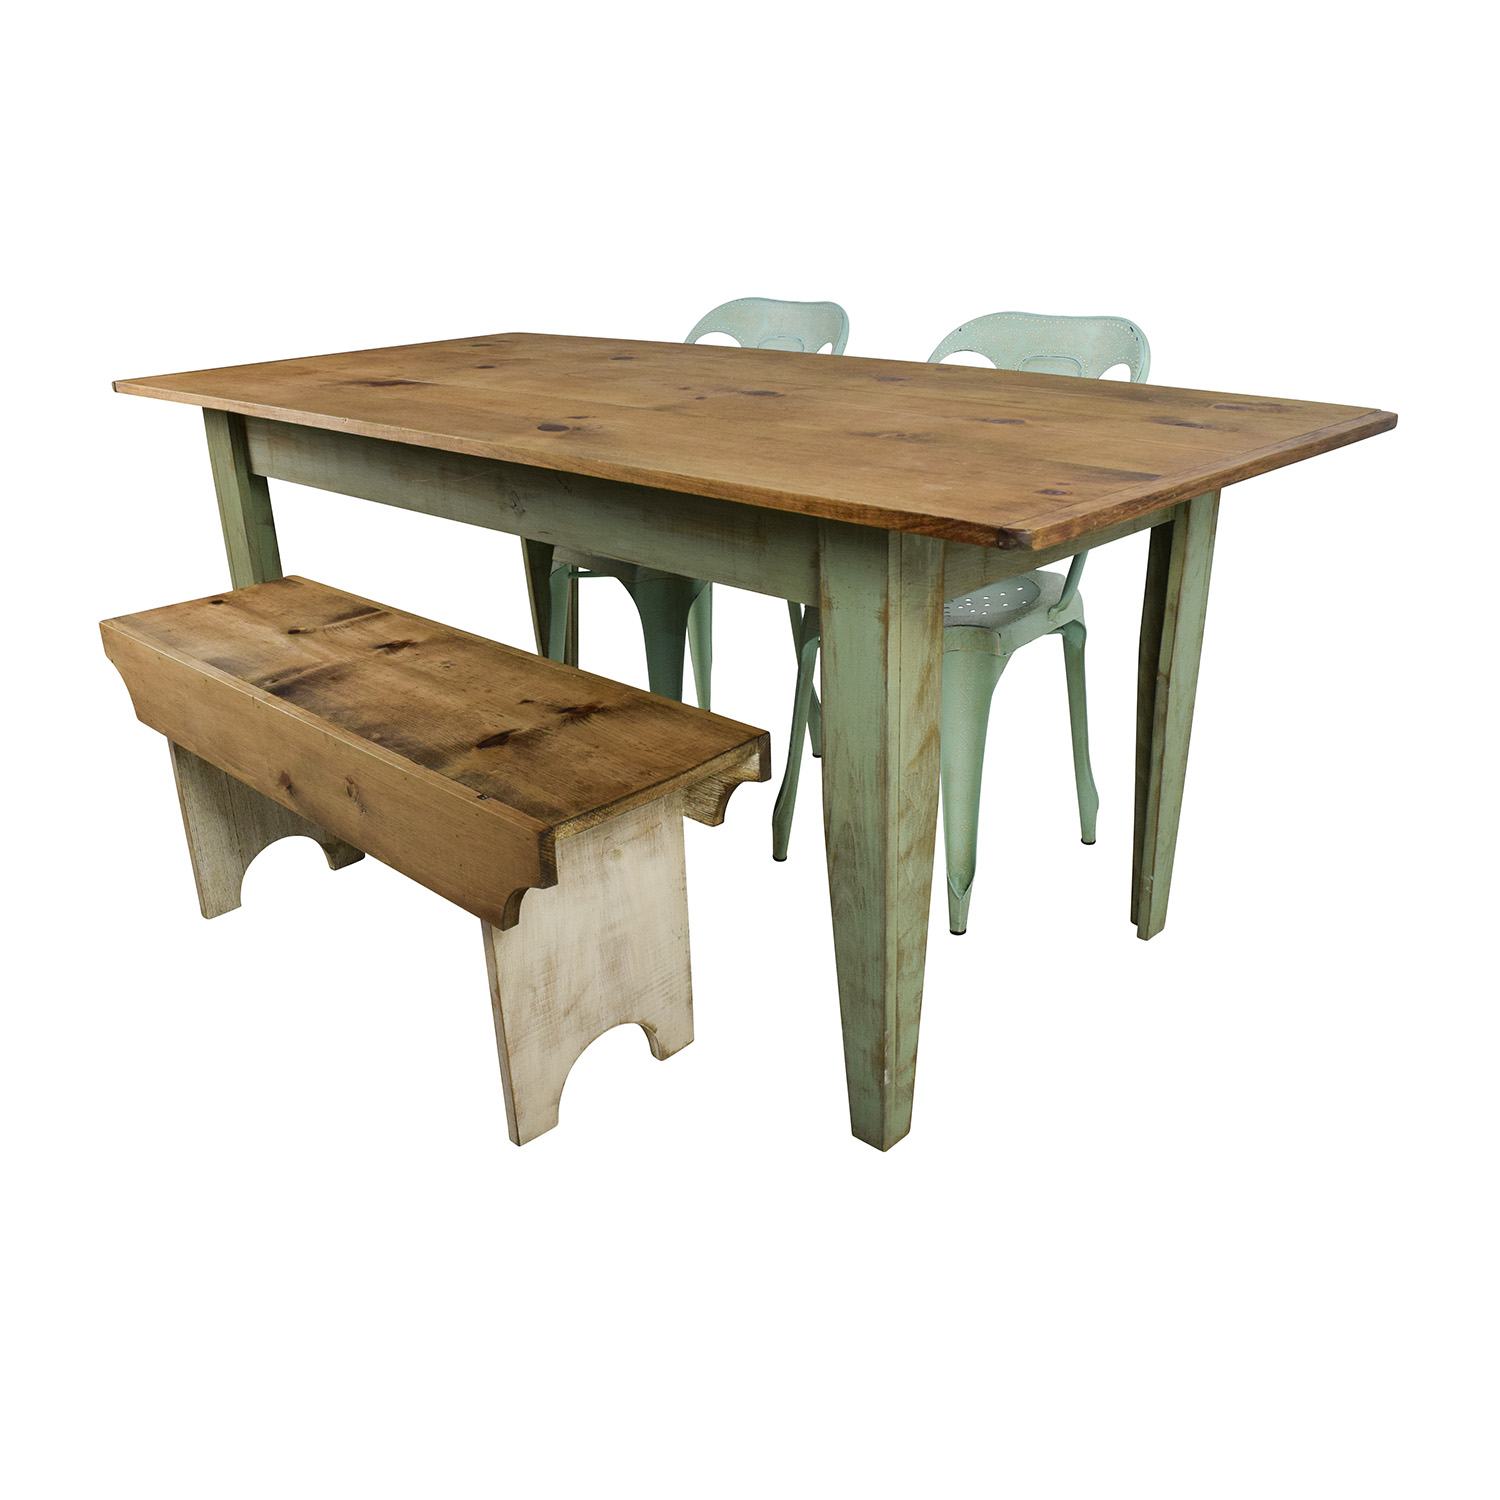 Farm tables for sale full size of table chairs french for Rustic farm tables for sale